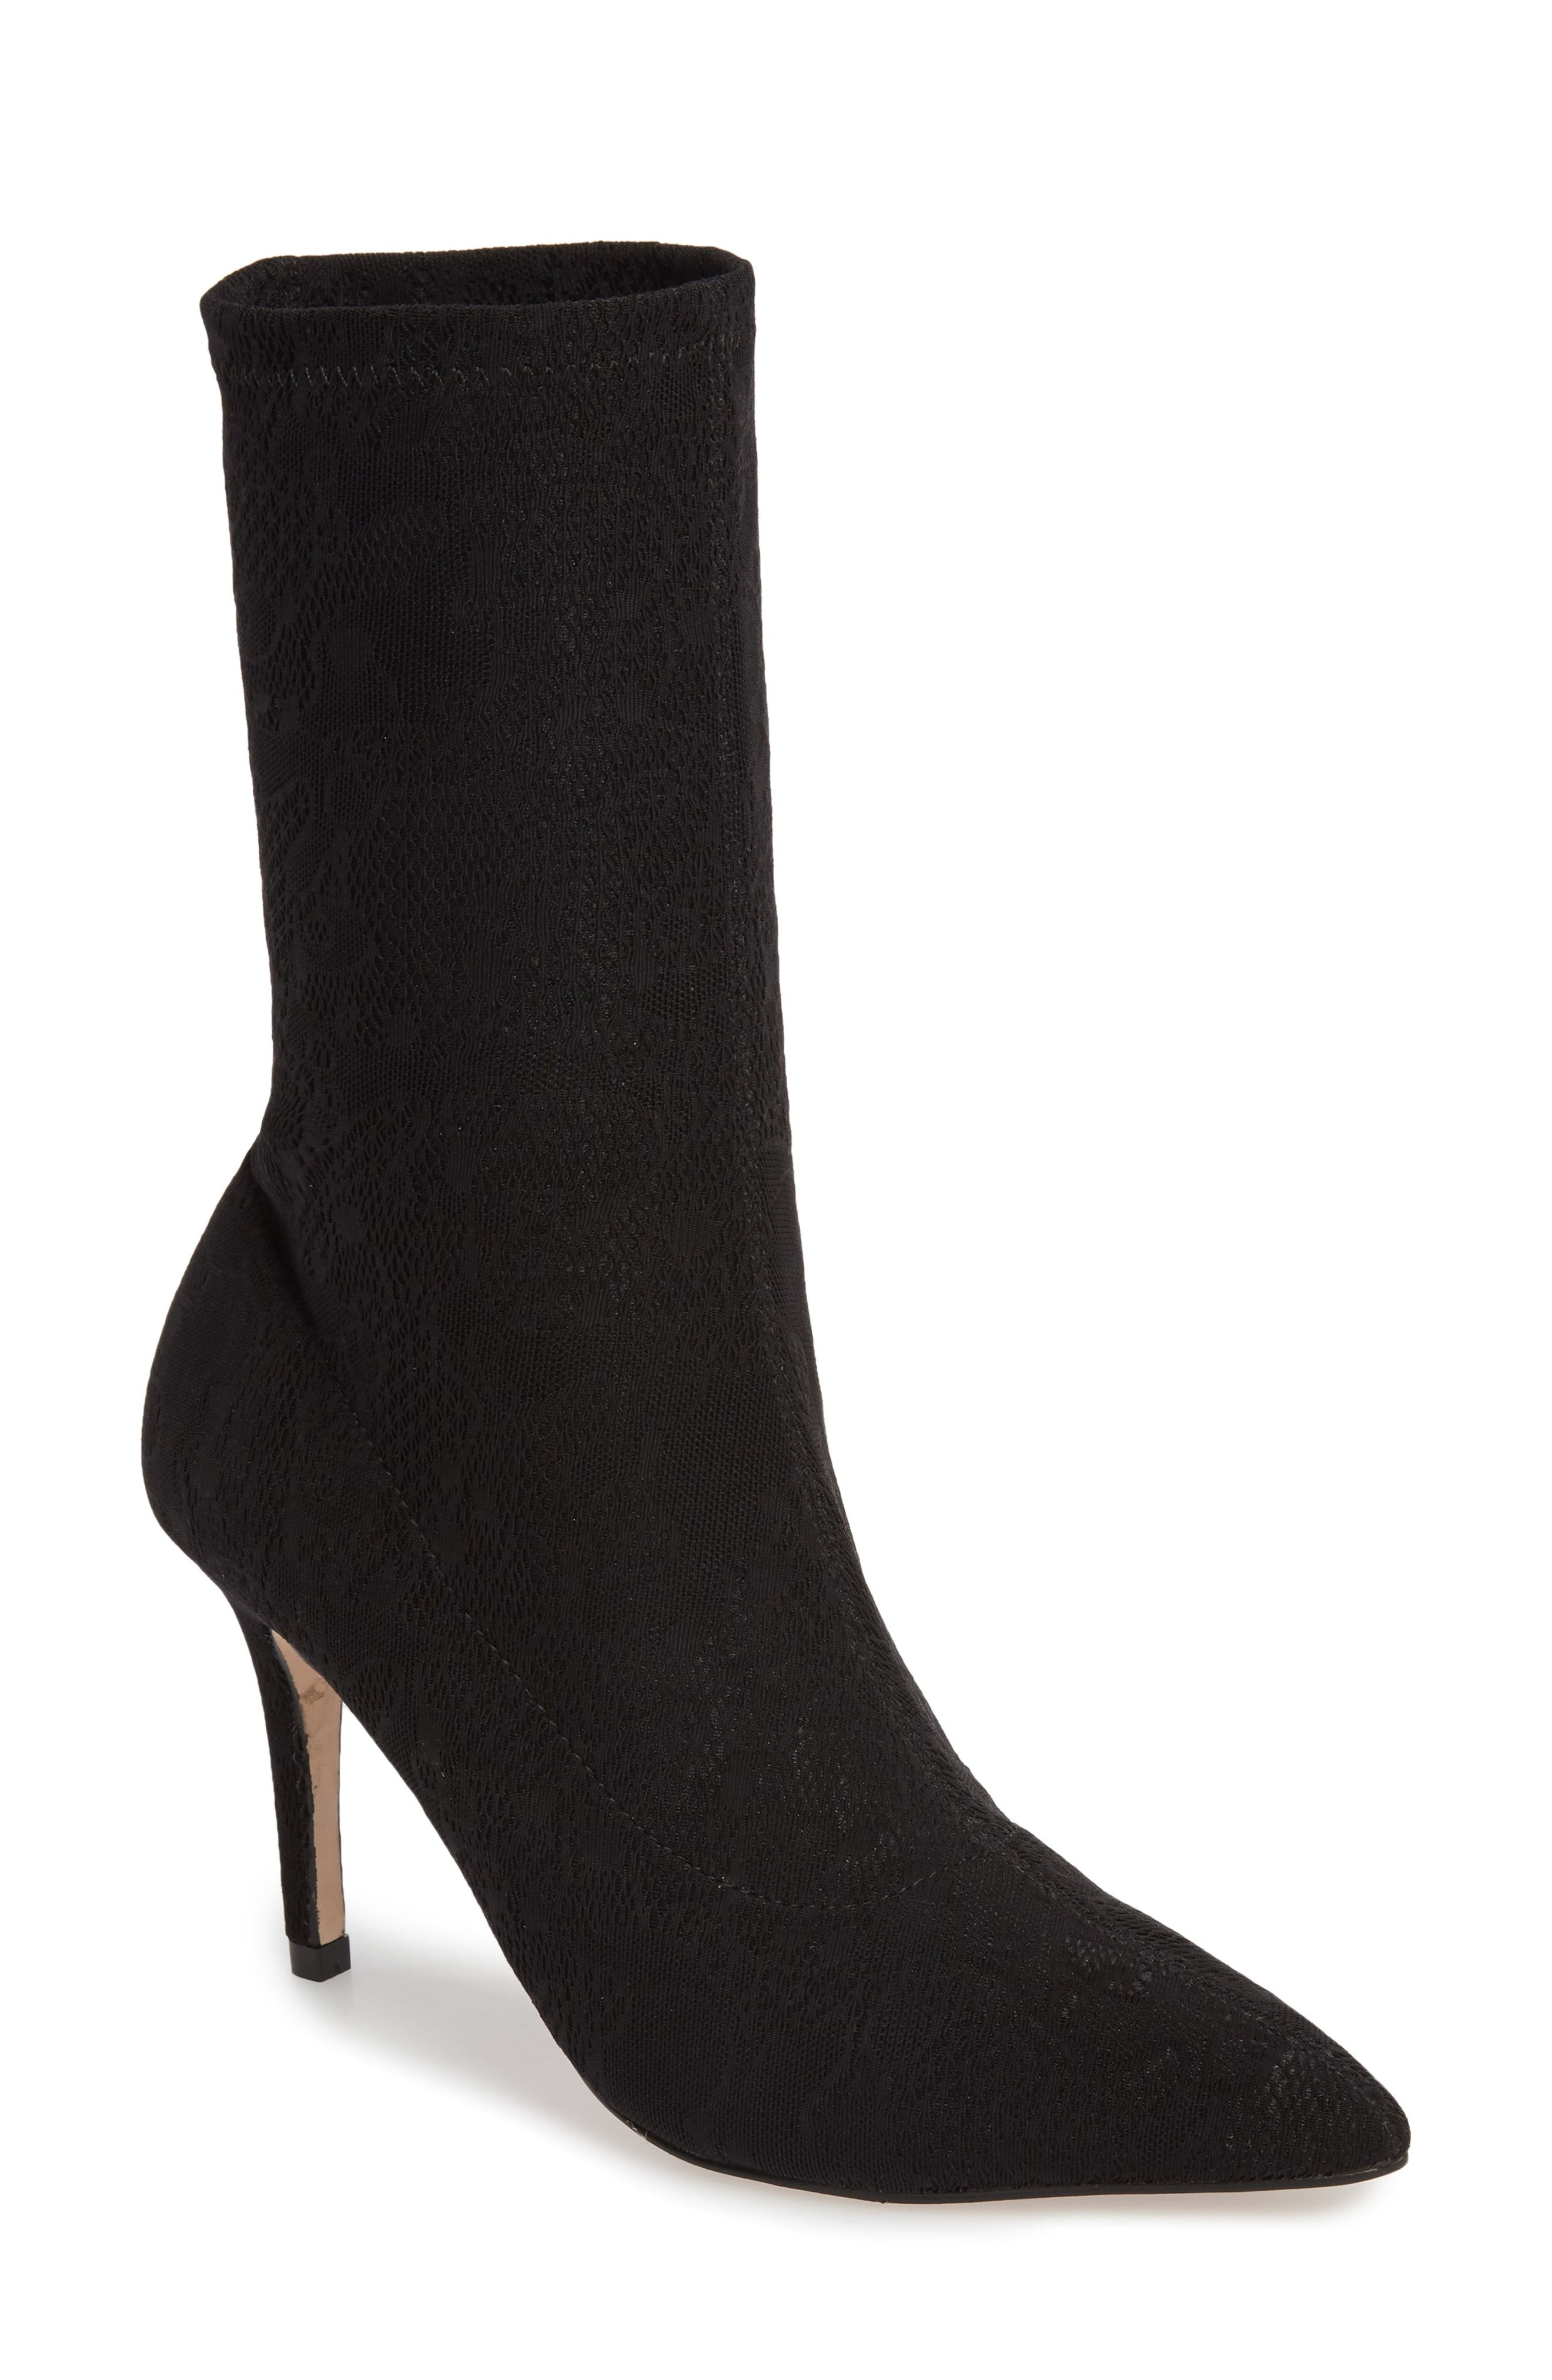 9726101cc50a Make a statement and dazzle admirers in this eye-catching sock bootie  crafted in a feminine